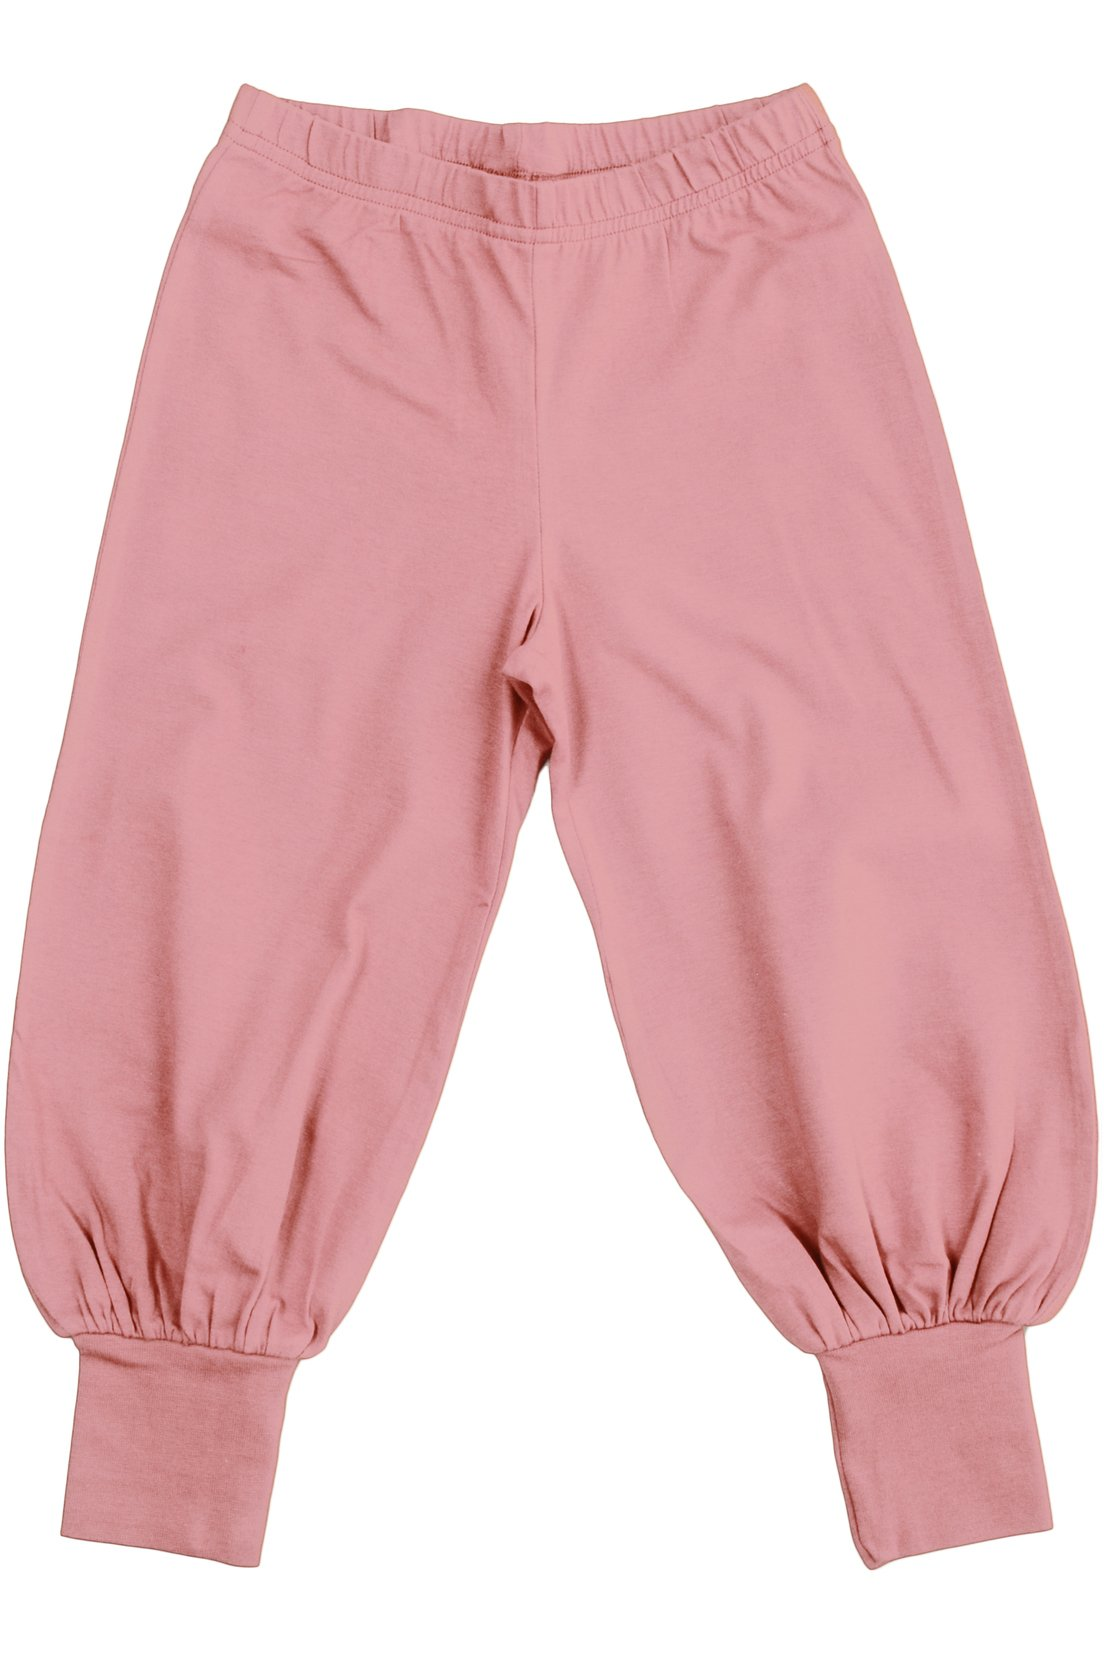 Blush Baggy Pants | More Than a Fling | DUNS Fashion - Snugglefox